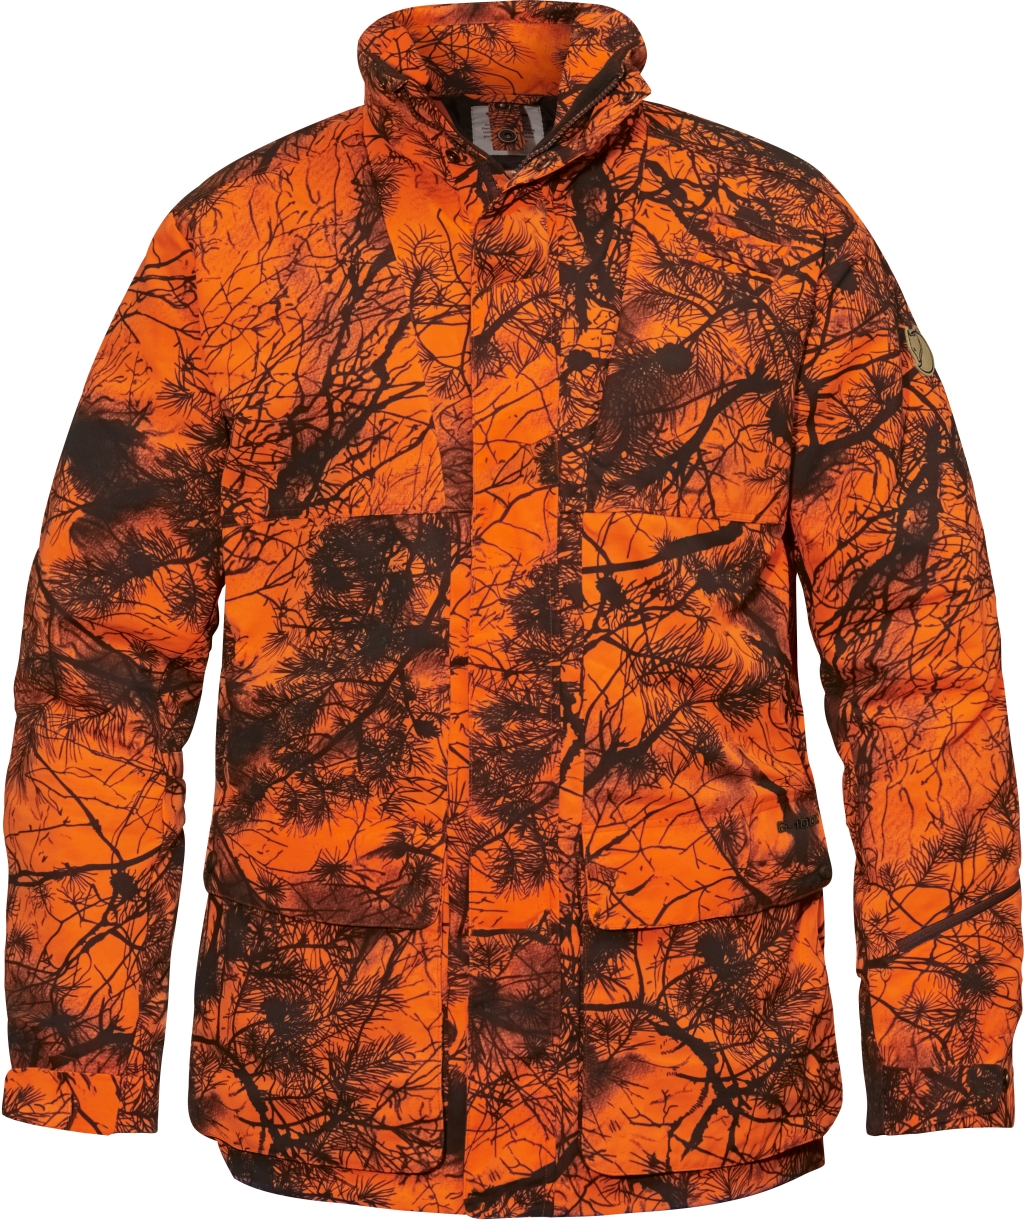 FjallRaven Brenner Pro Padded Jacket Camo Orange Camo-30